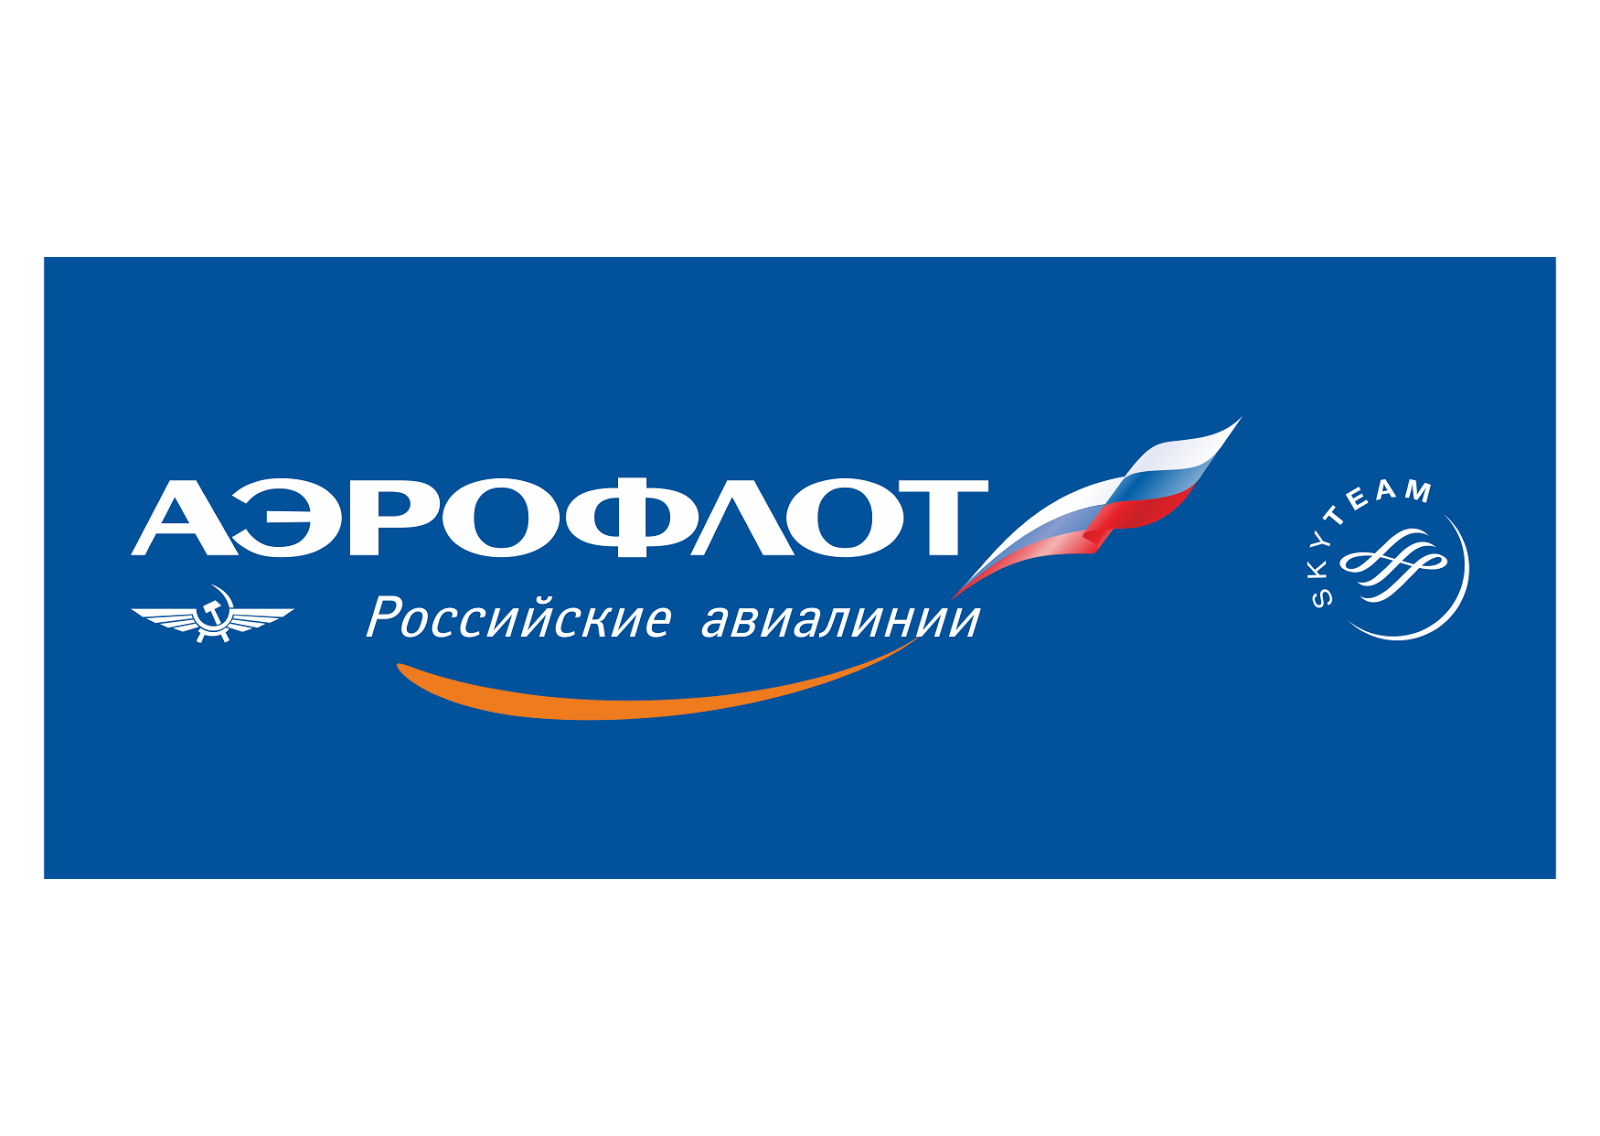 Aeroflot Russian Airlines Logo Vector - Aeroflot Russian Airlines PNG